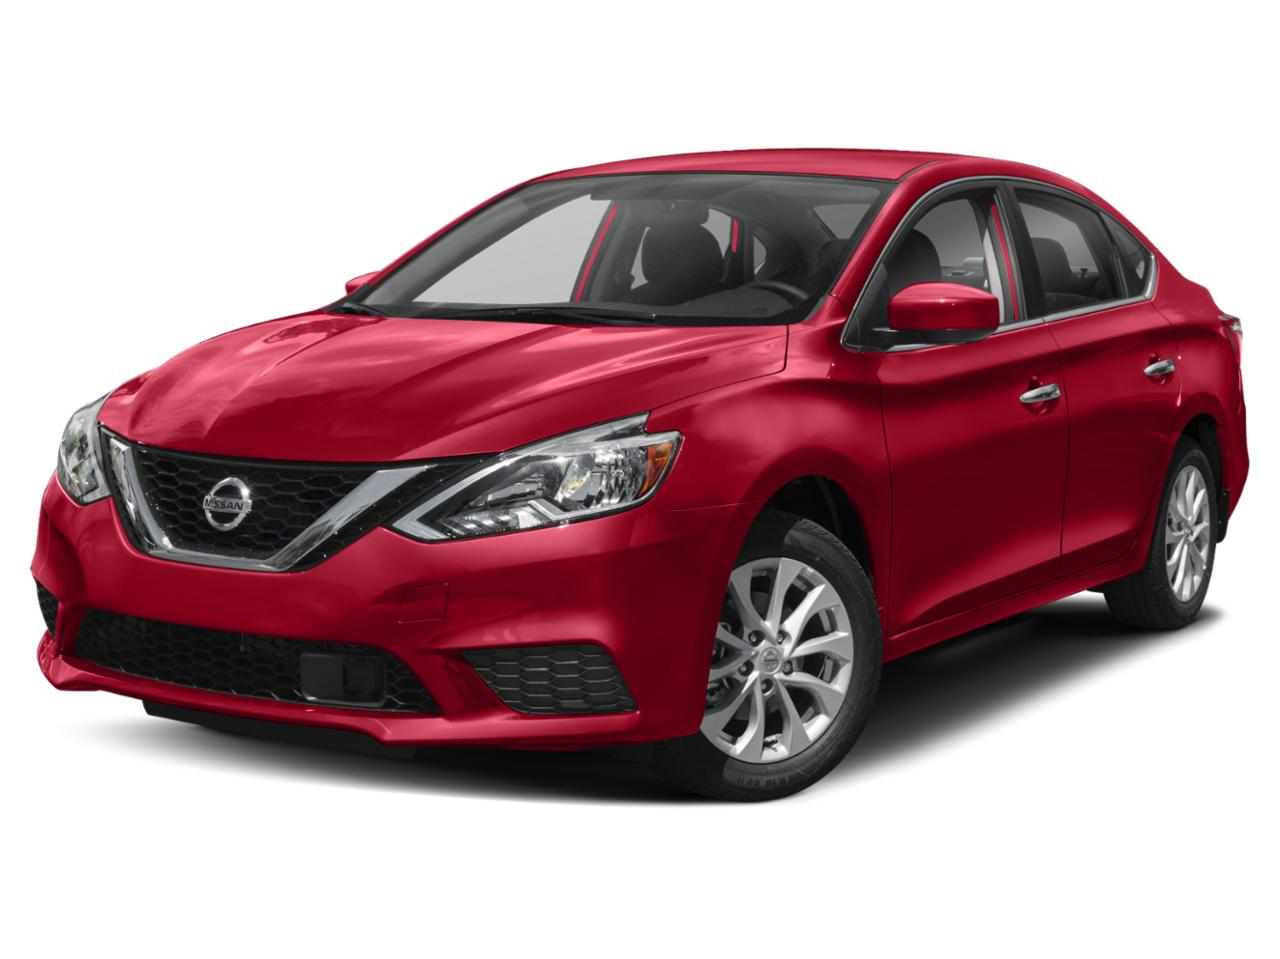 2019 Nissan Sentra Vehicle Photo in Killeen, TX 76541